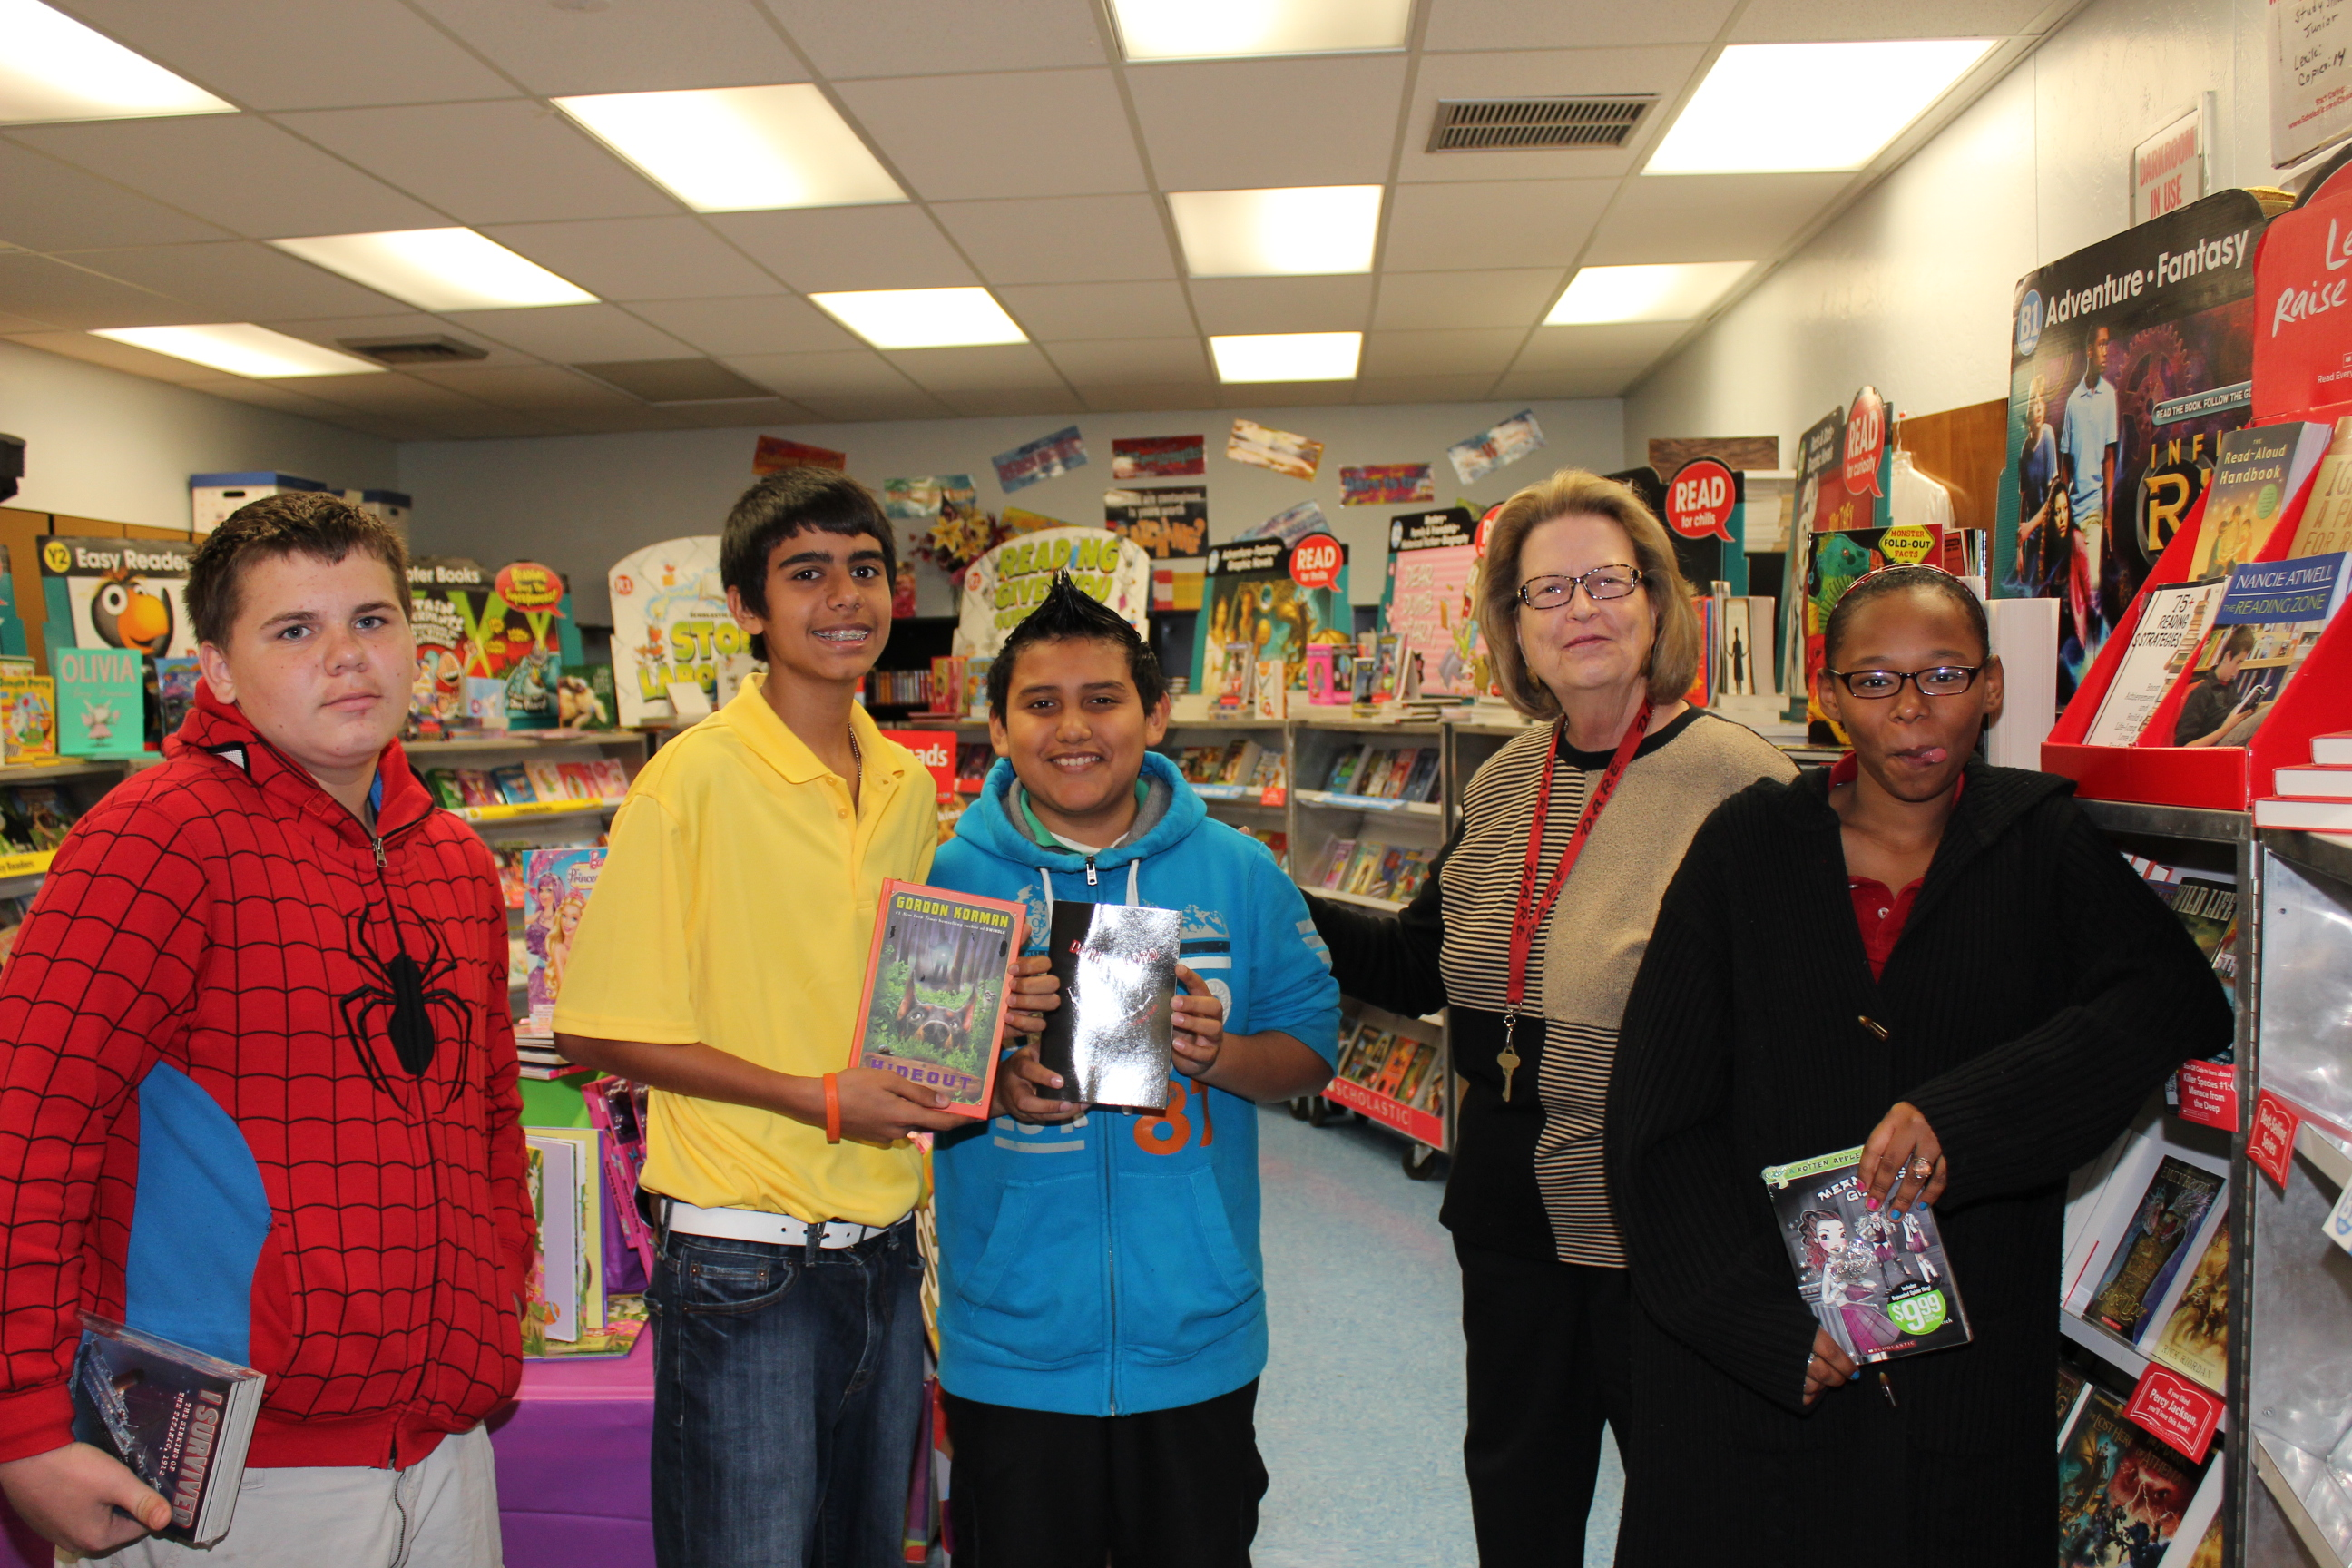 Northport community book fair promotes positive interactions